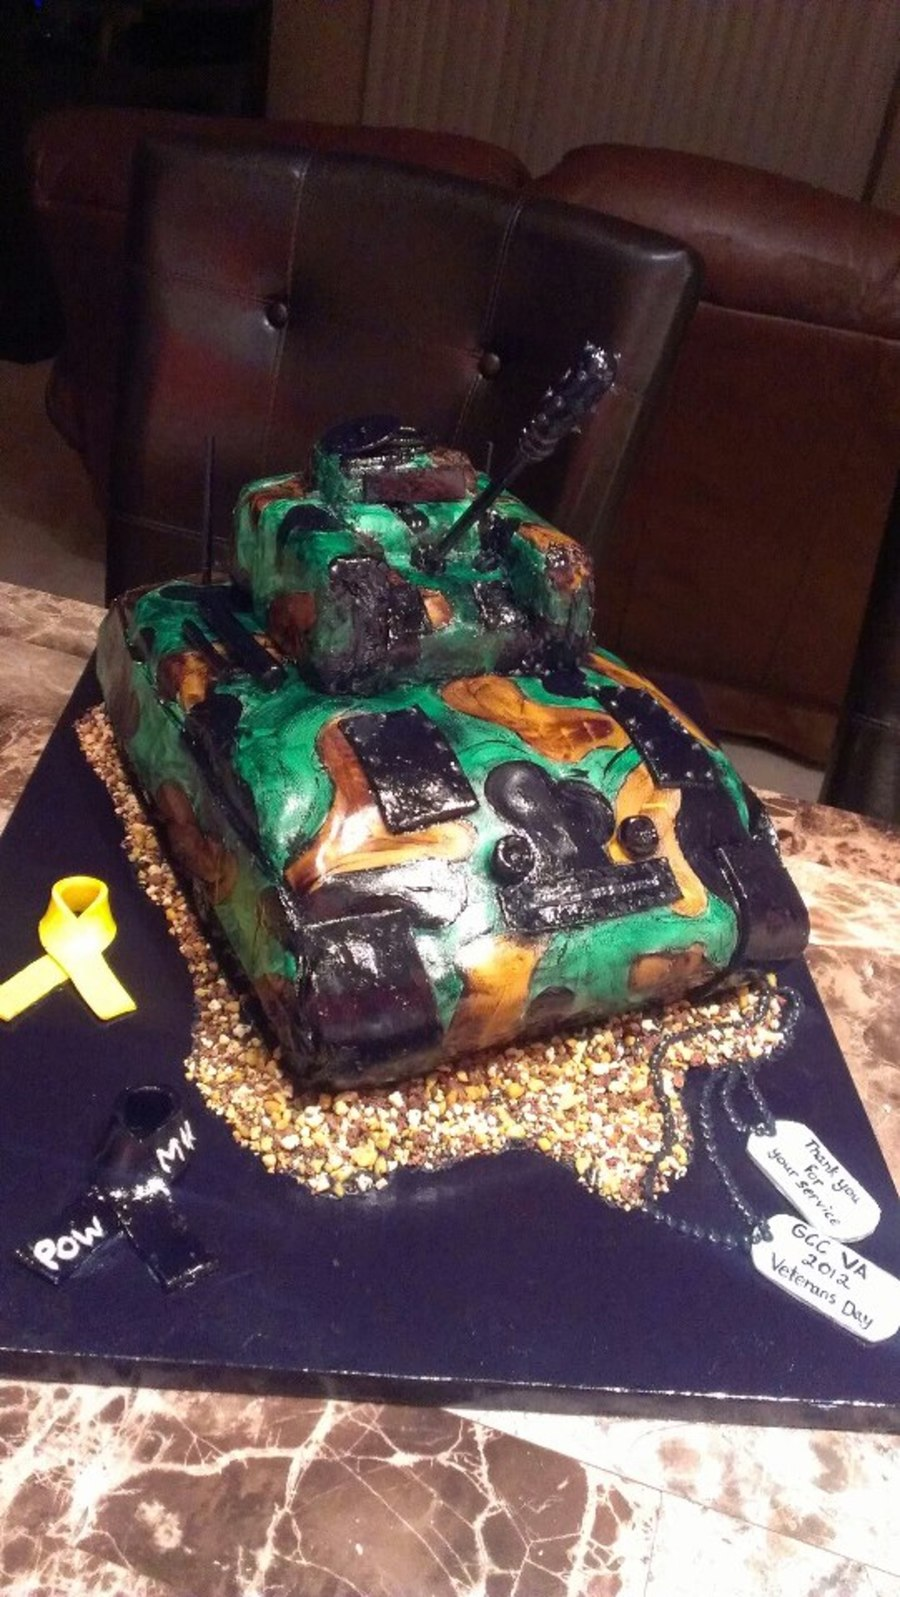 M1A2 Military Army Tank on Cake Central